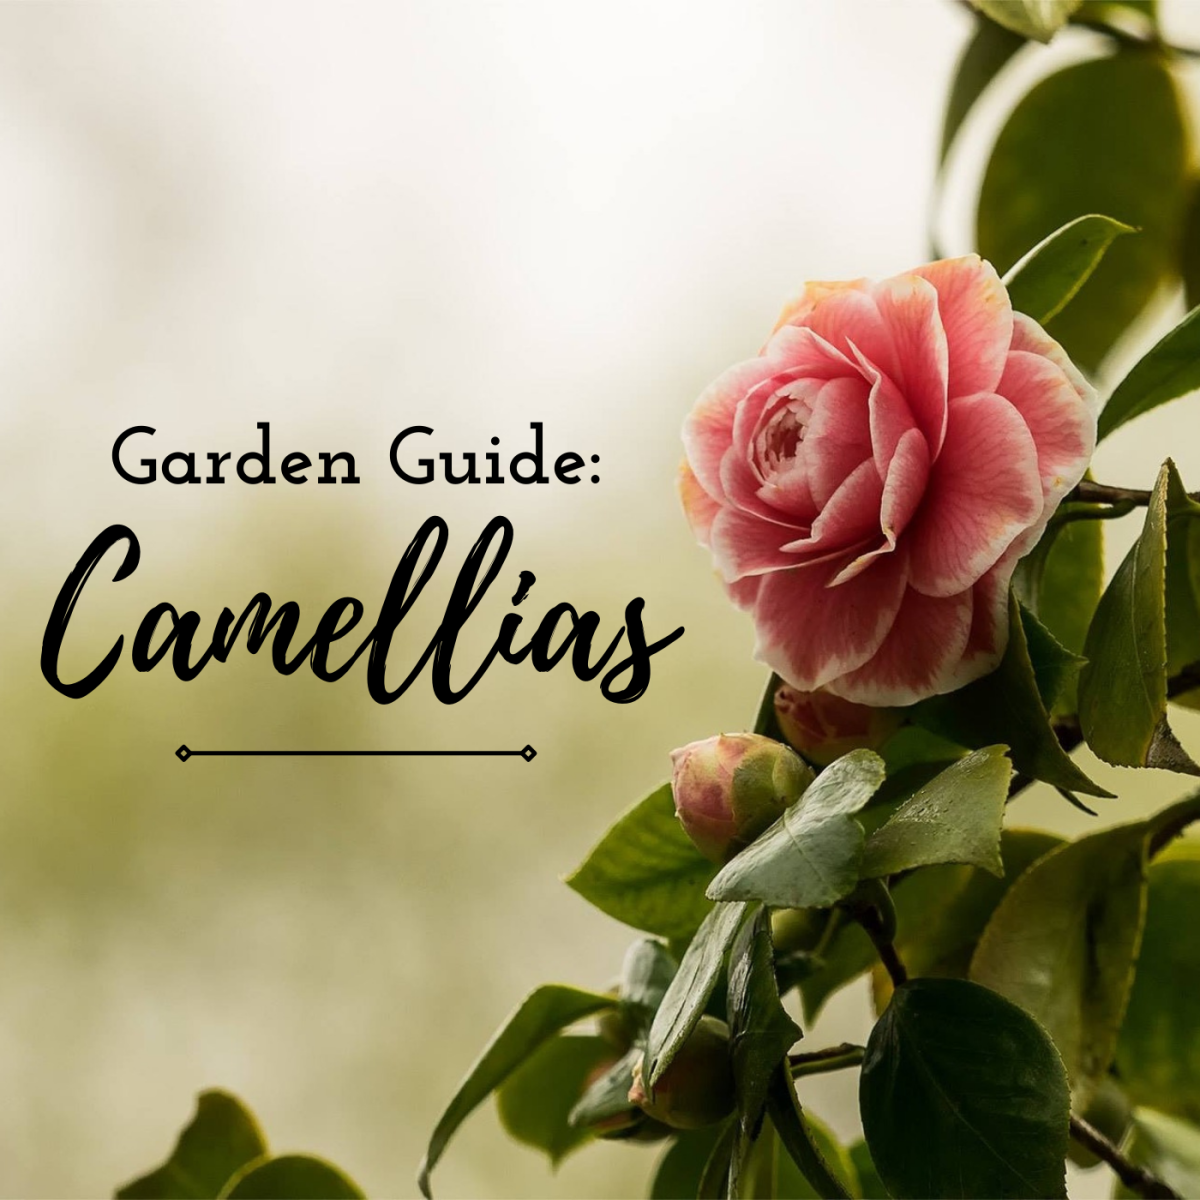 Learn how to grow the beautiful, fall- and winter-blooming camellia in your garden.